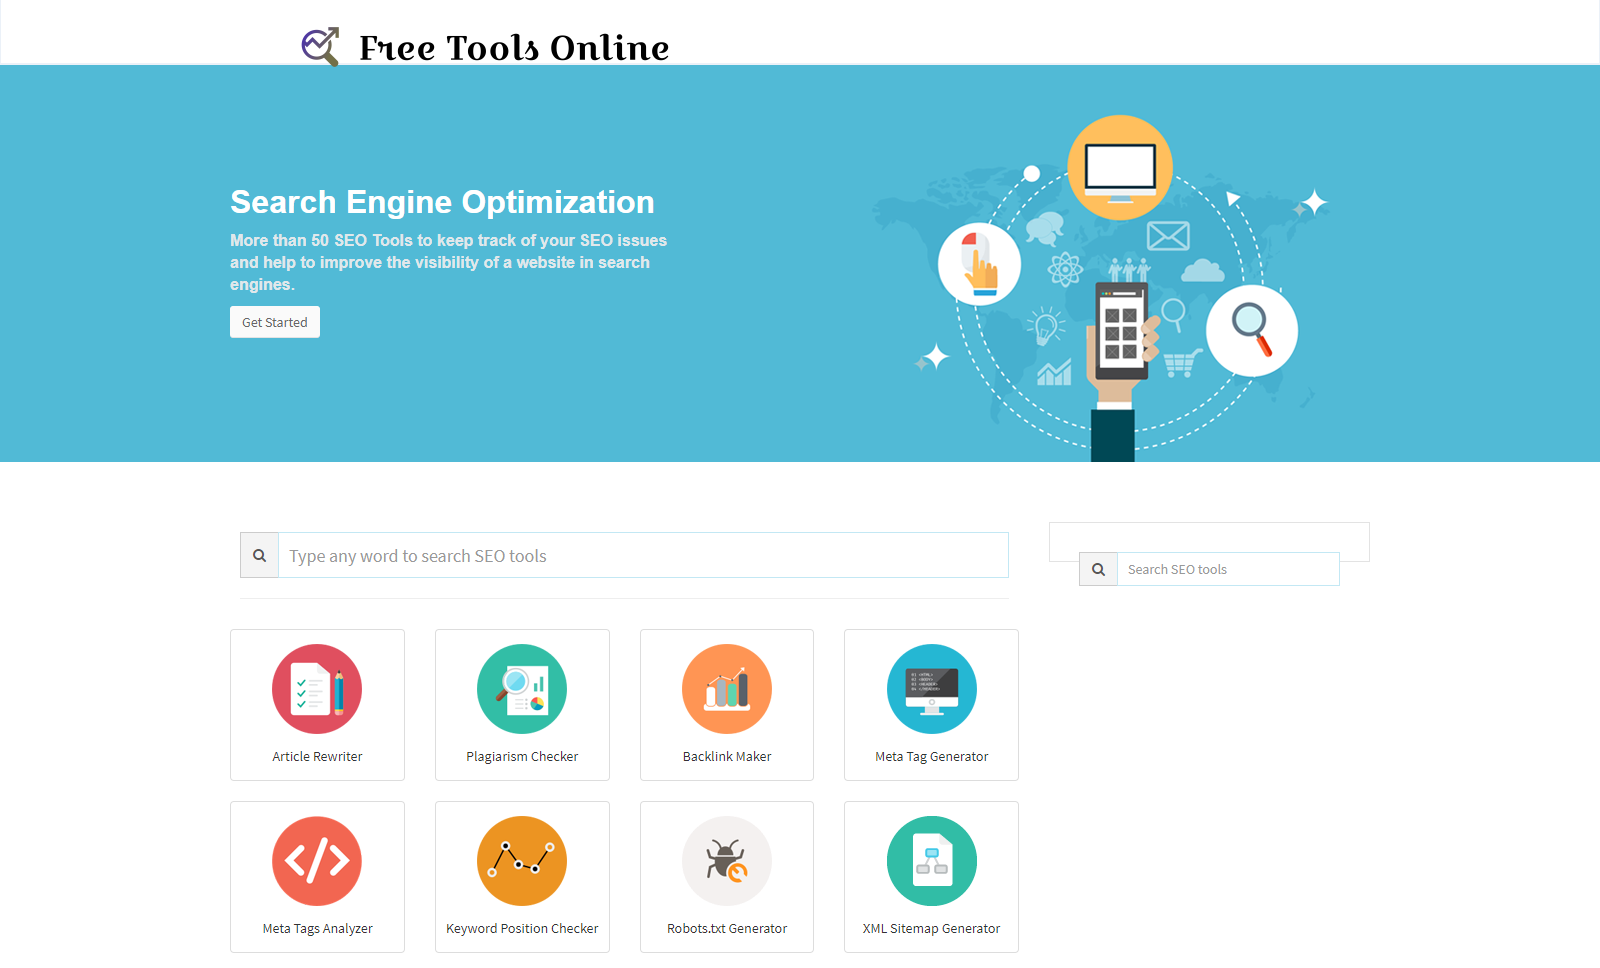 Top 9 Simple And Free SEO Tools In 2021 - Free Tools Online